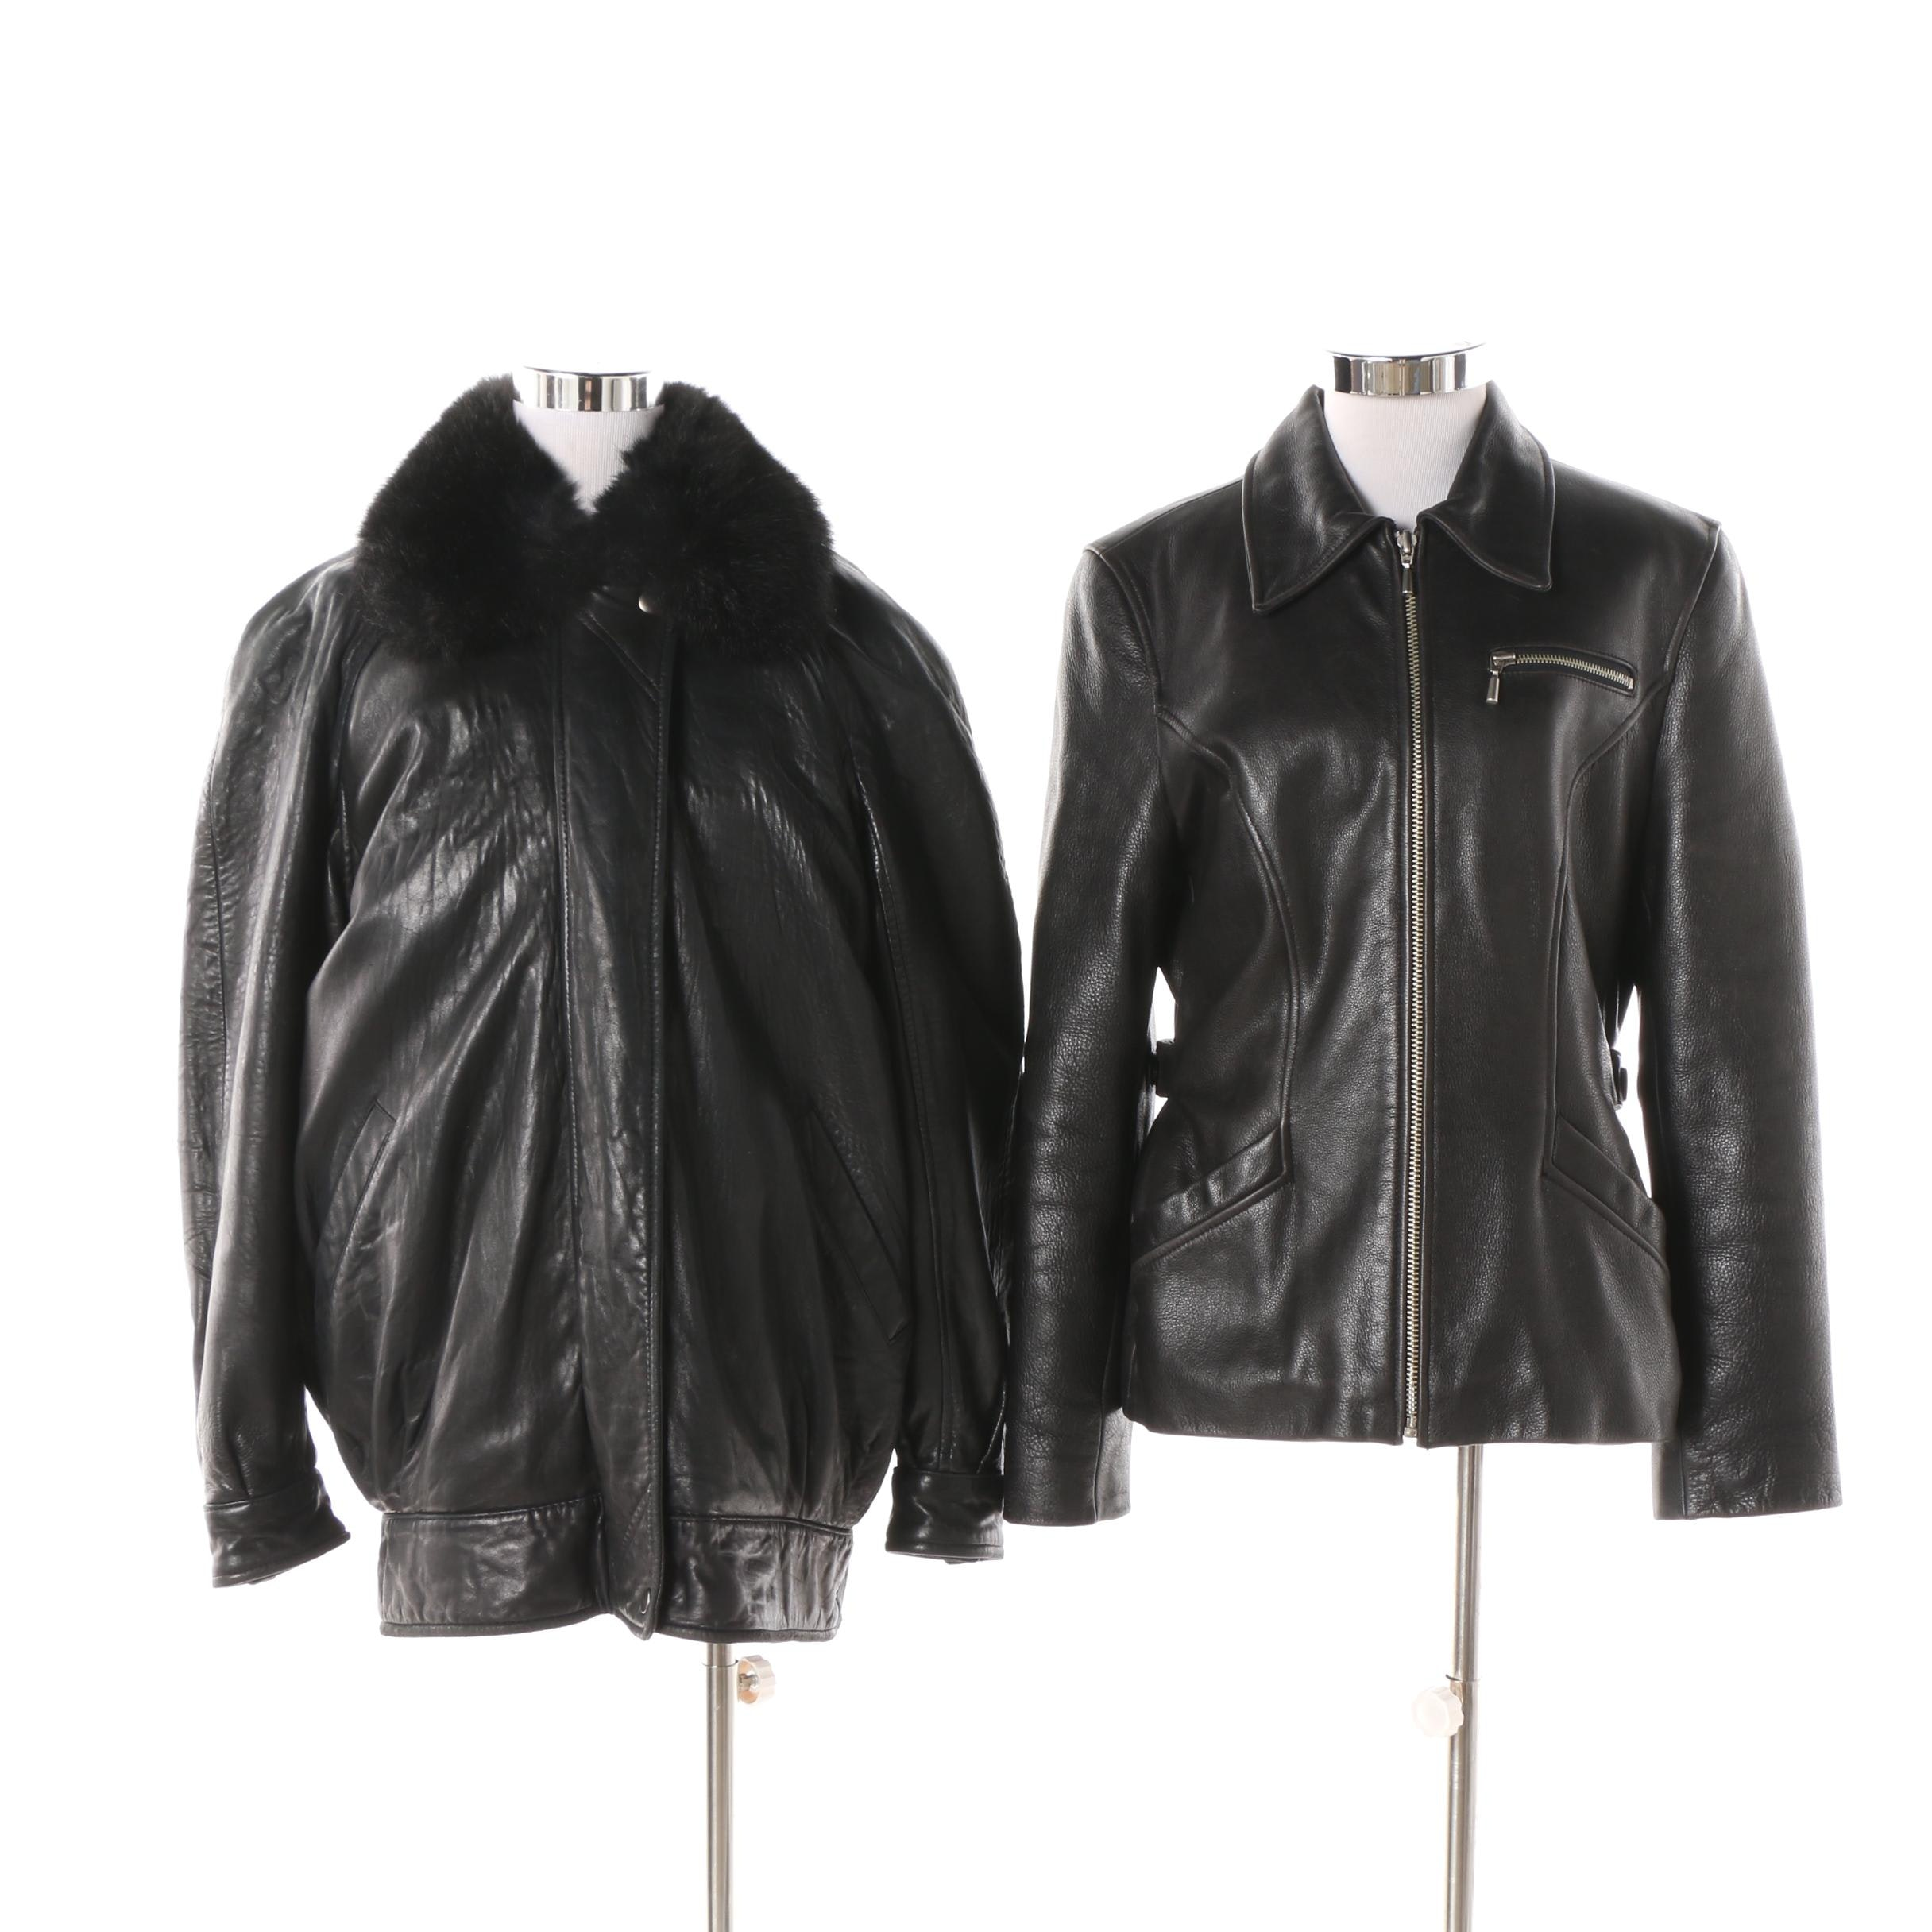 Women's Leather Jackets Featuring Andrew Marc Opossum Fur-Lined Jacket